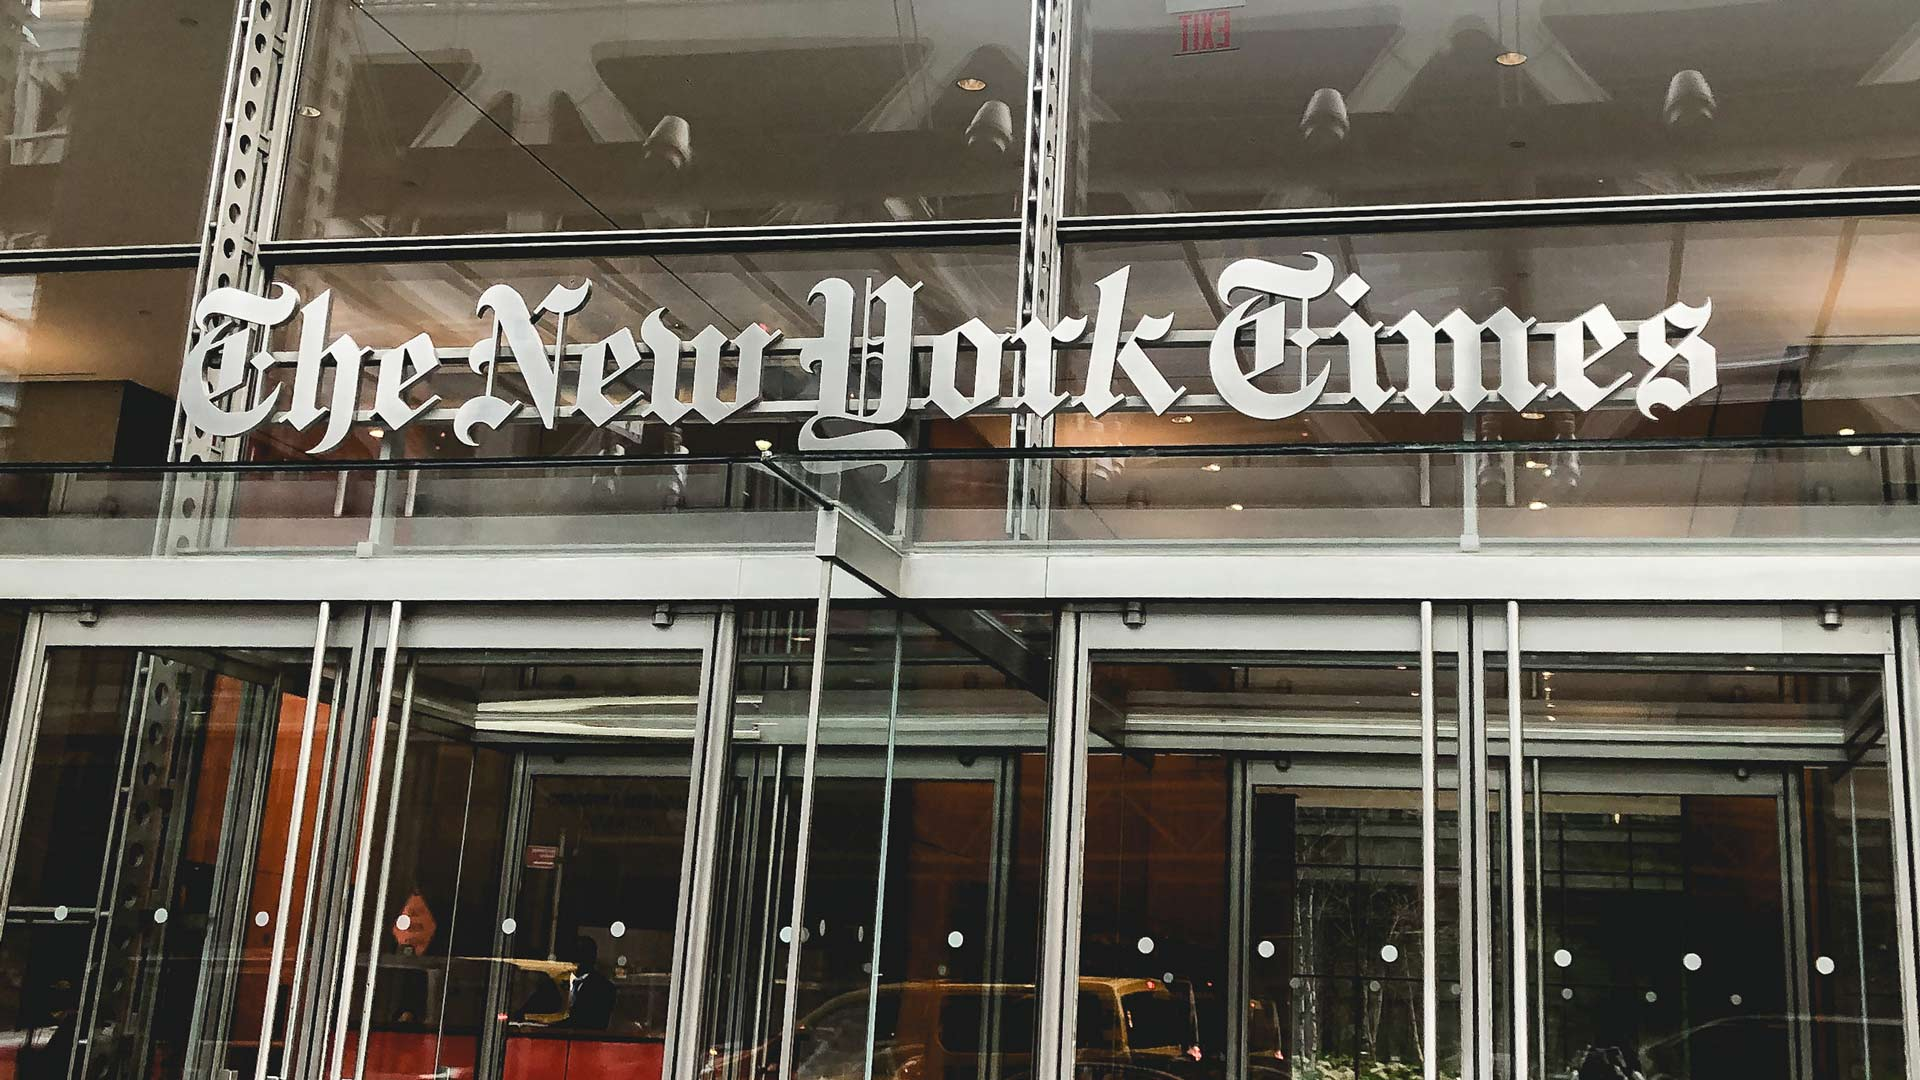 Exterior of New York Times building